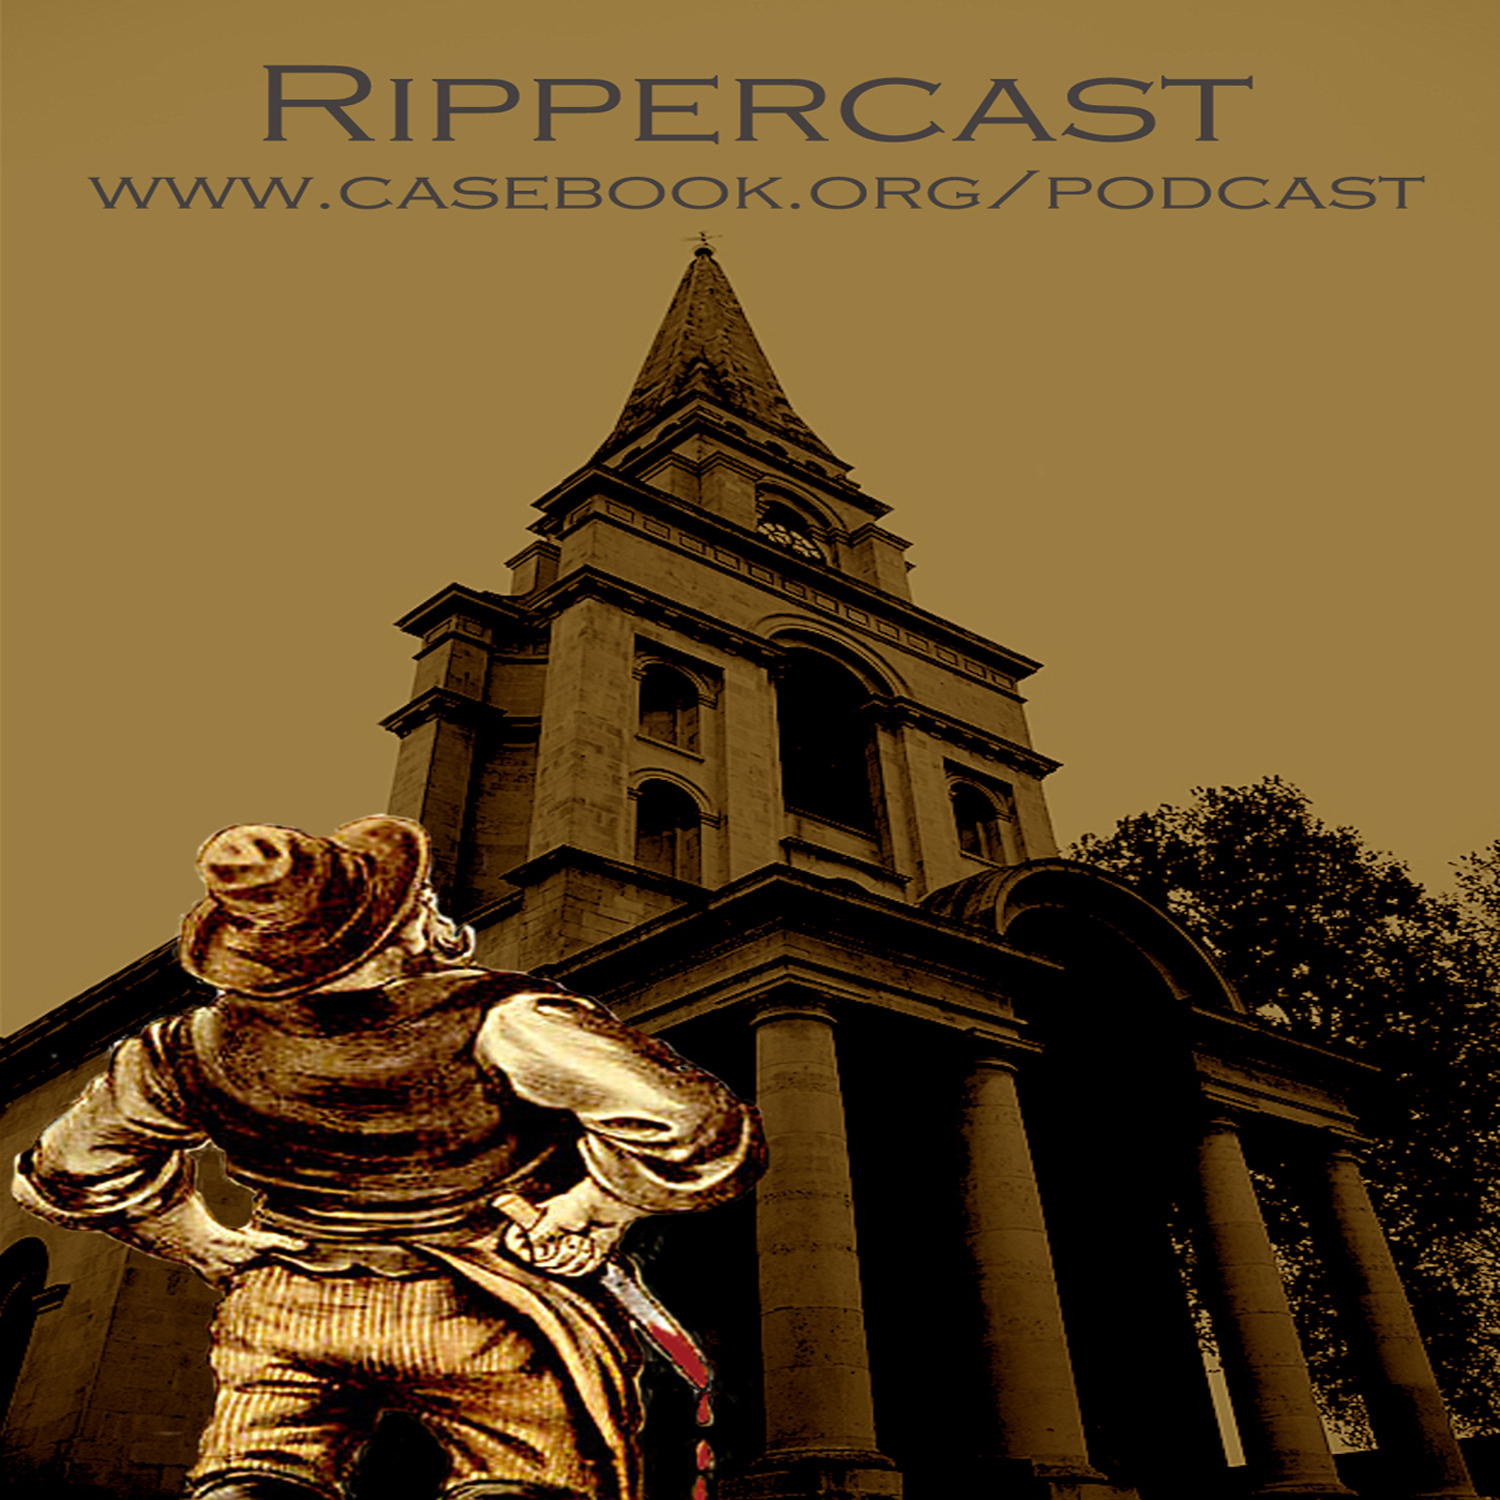 Rippercast- Your Podcast on the Jack the Ripper murders